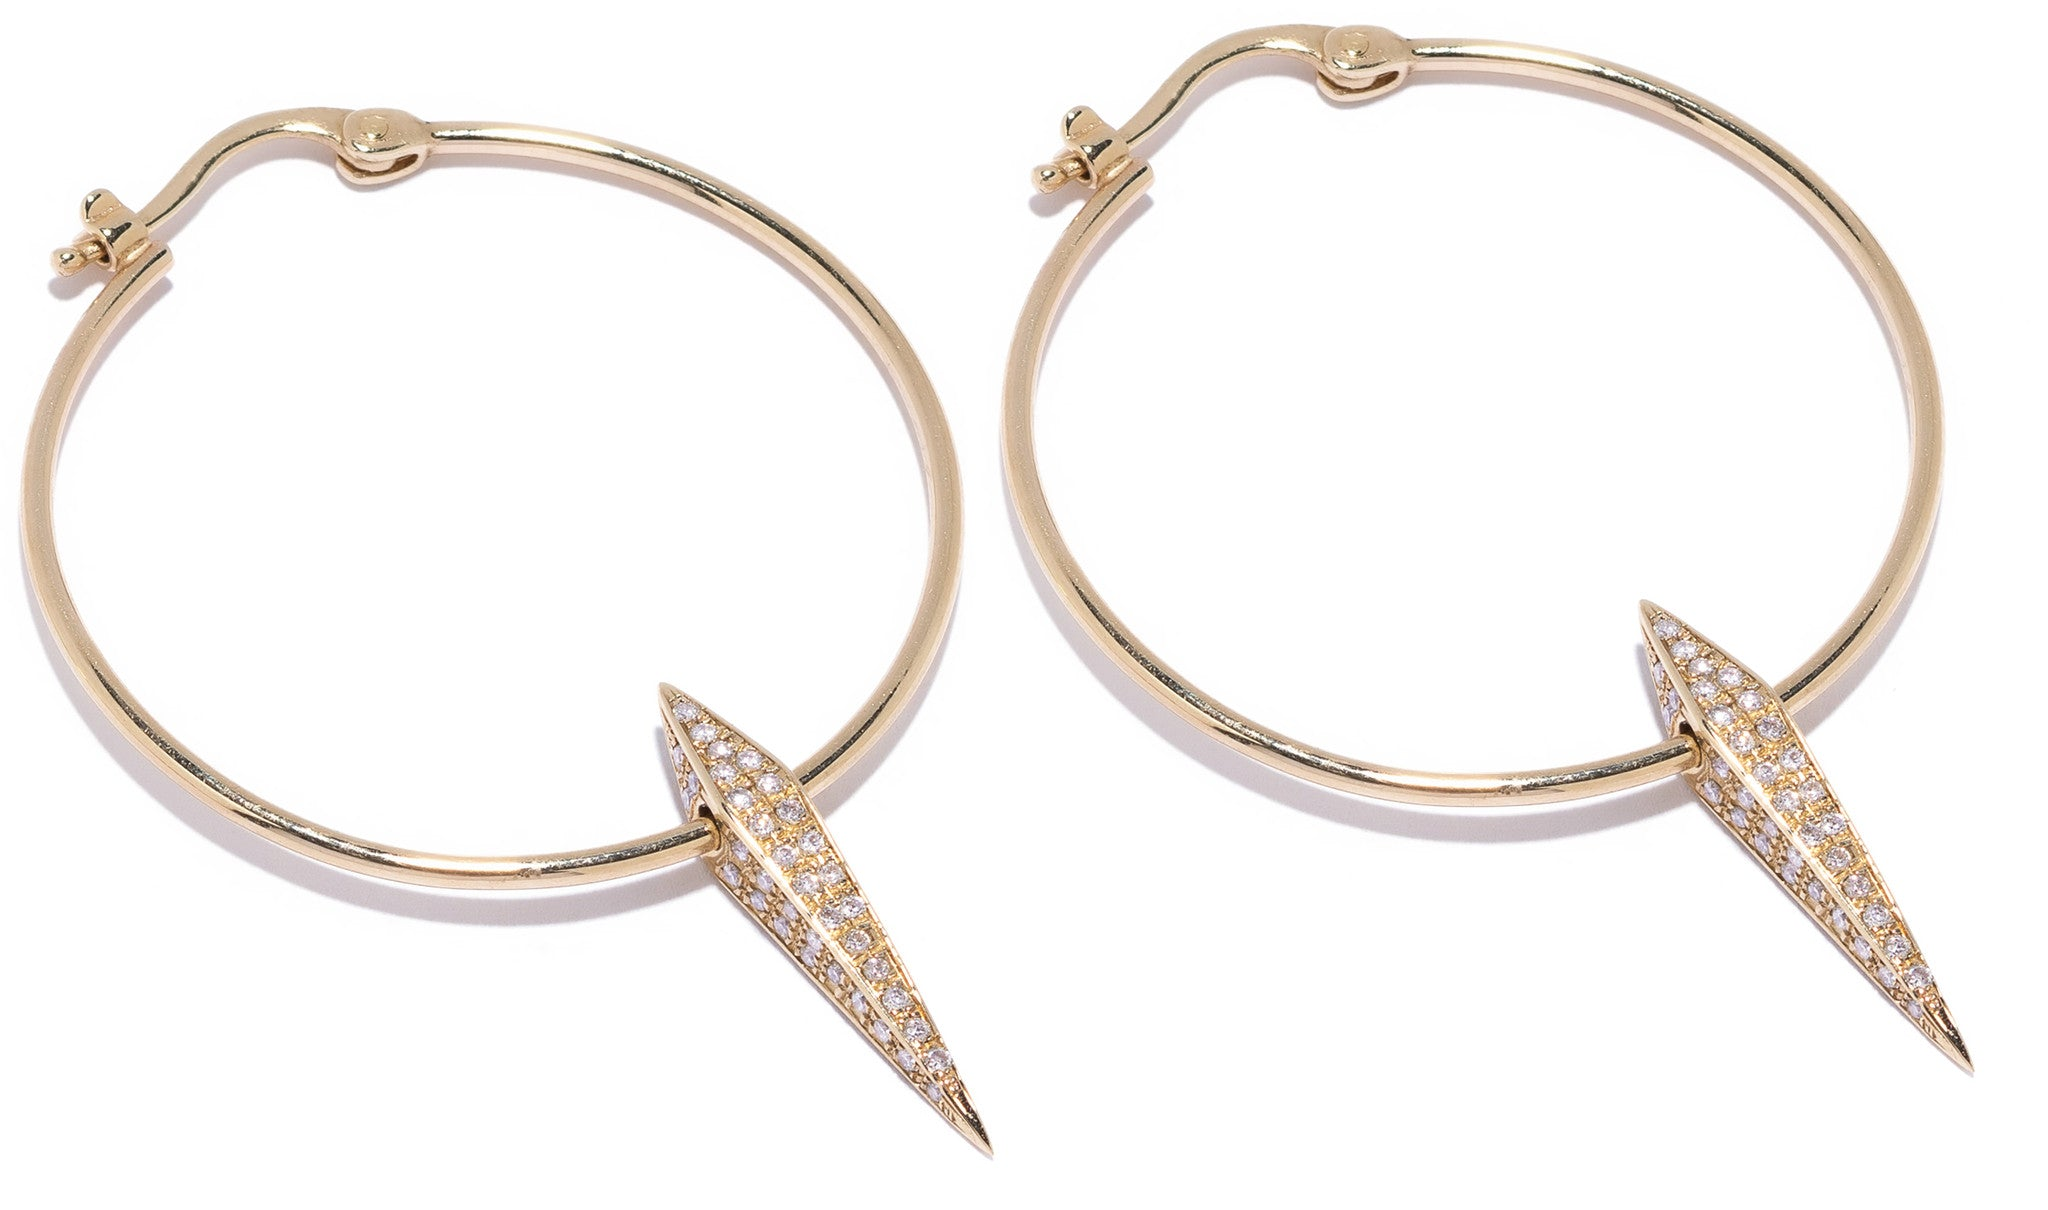 Micro Pave Diamond Large DT Pyramid Spike Large Hoop Earrings Wendy Nichol fine jewelry designer simple delicate Large Hoops solid 14k Gold Yellow Rose White Diamonds Handmade in NYC New York City Dangle Dagger Sword Hoops First Ear Hole Piercing Lower Lobe